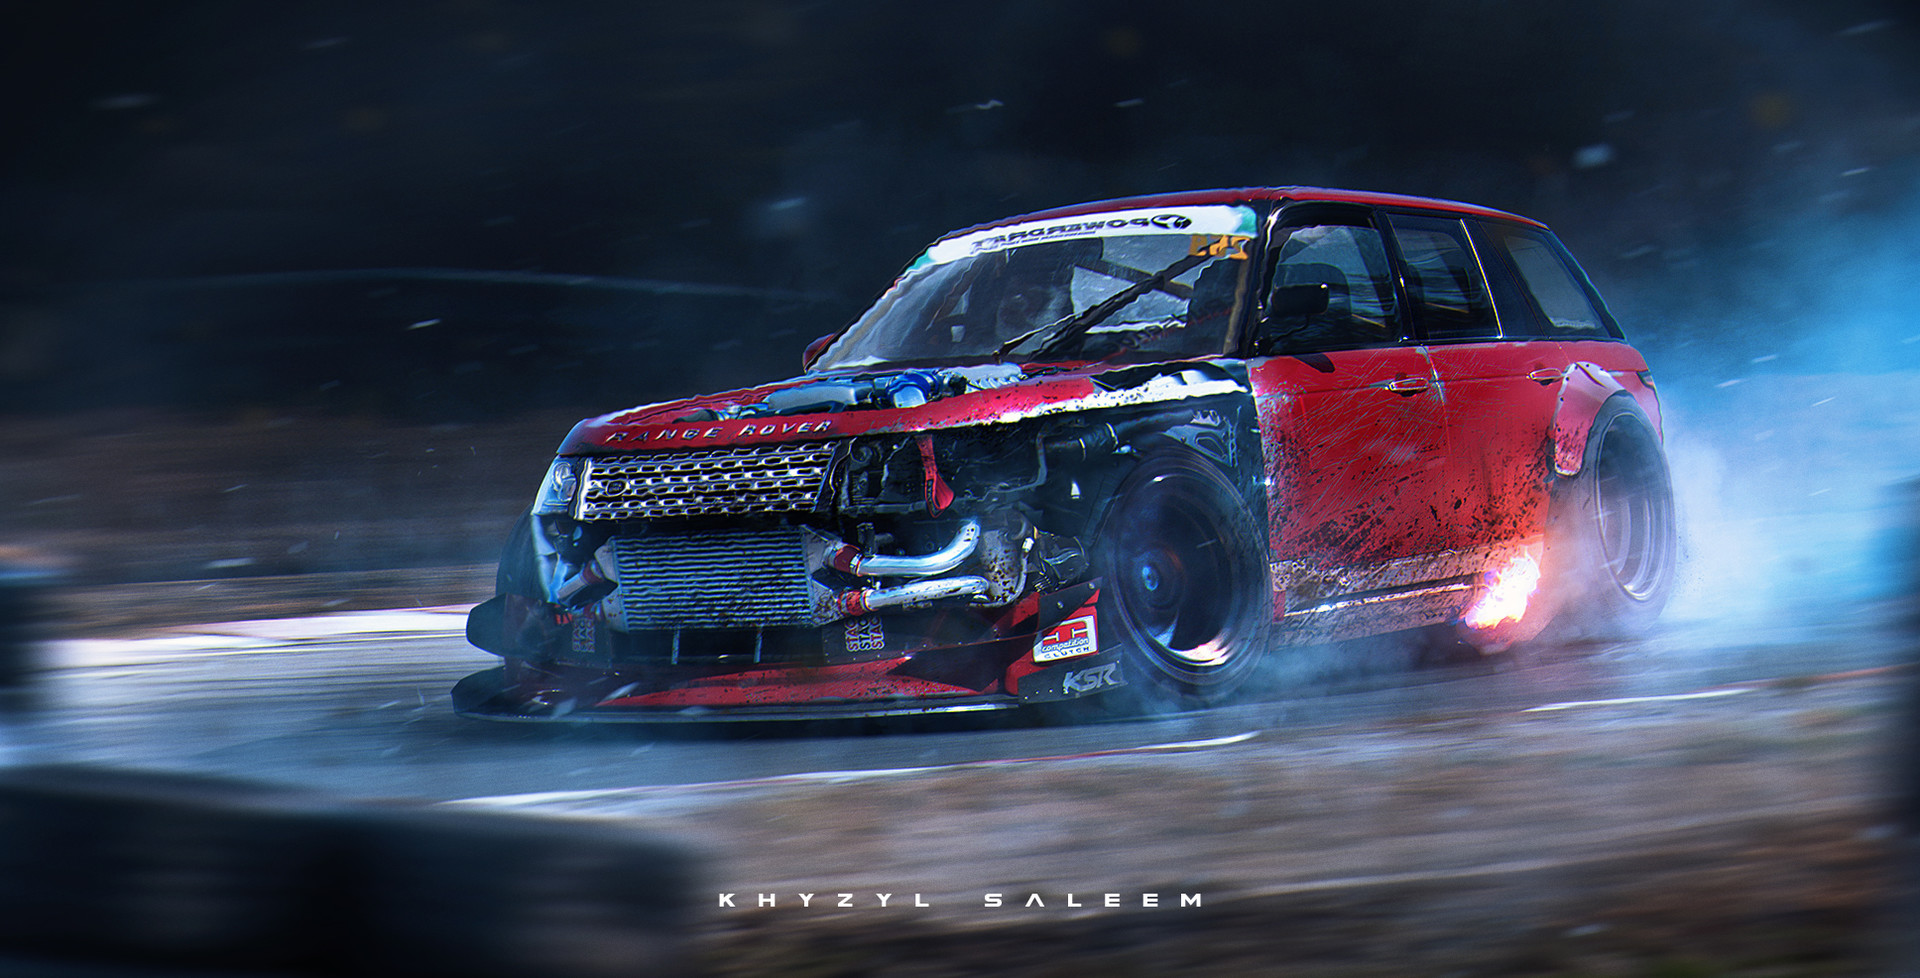 Khyzyl Saleem Range Rovers Like To Drift Too